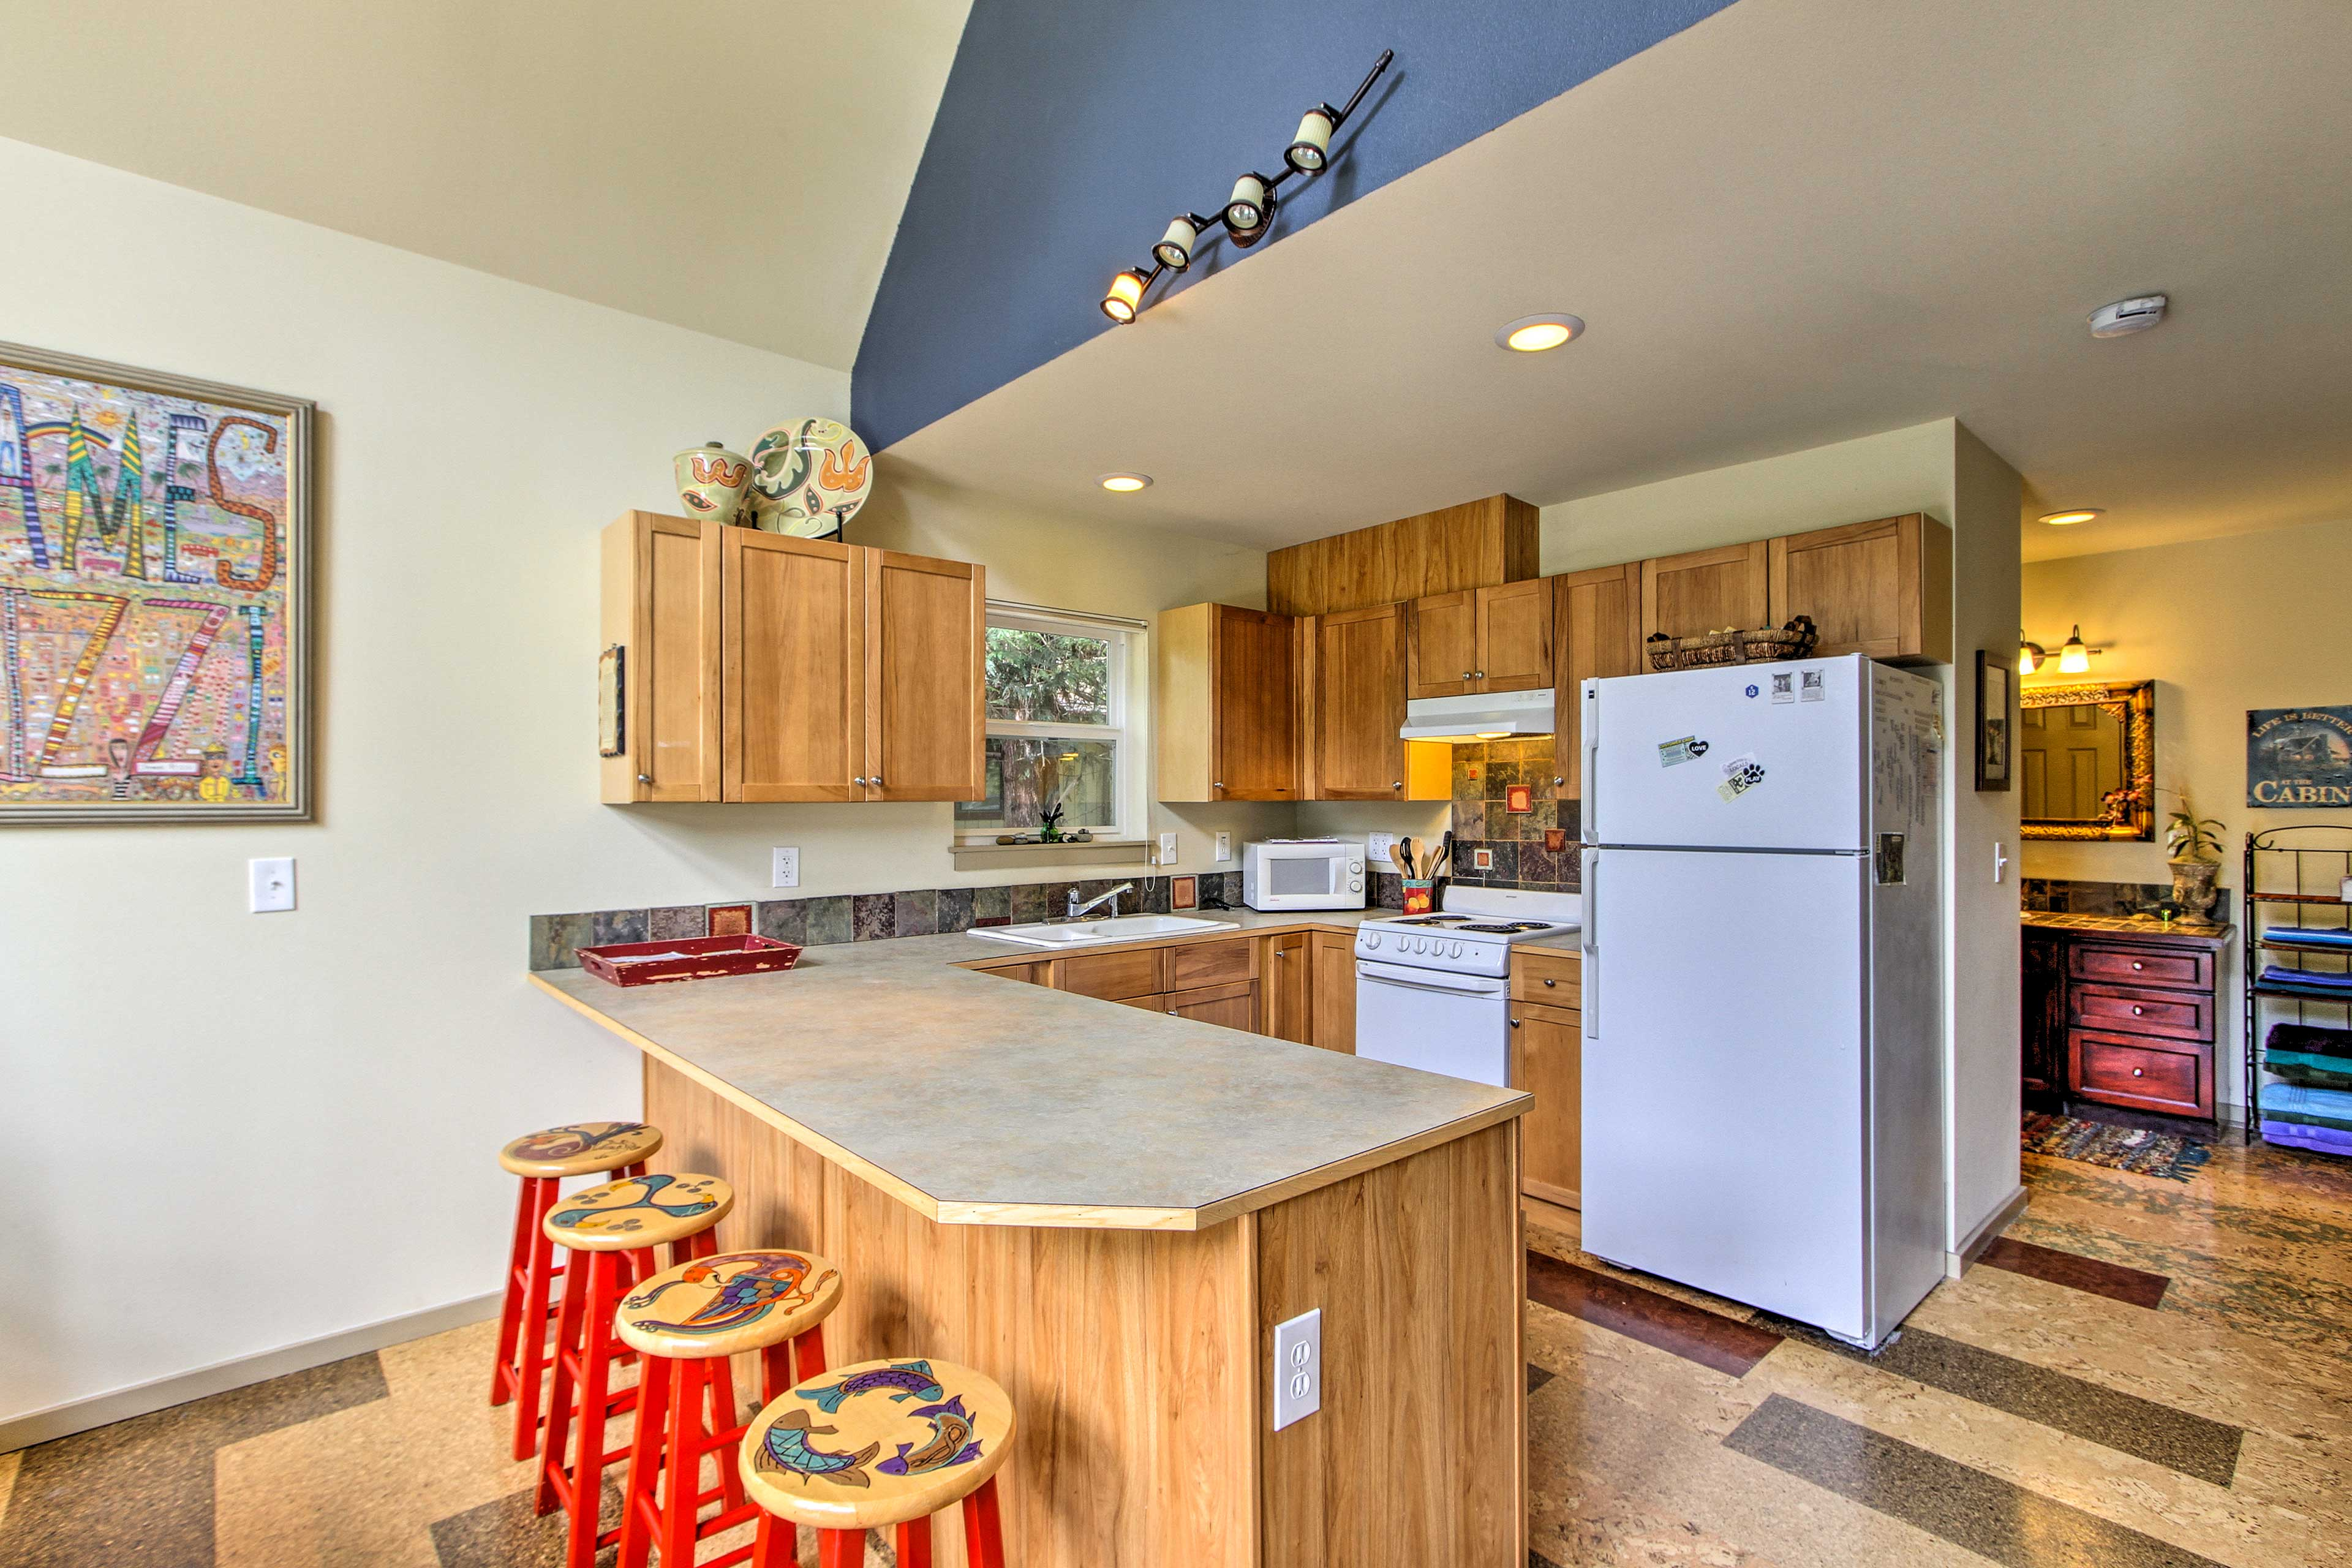 Guests can watch you cook from the breakfast bar!